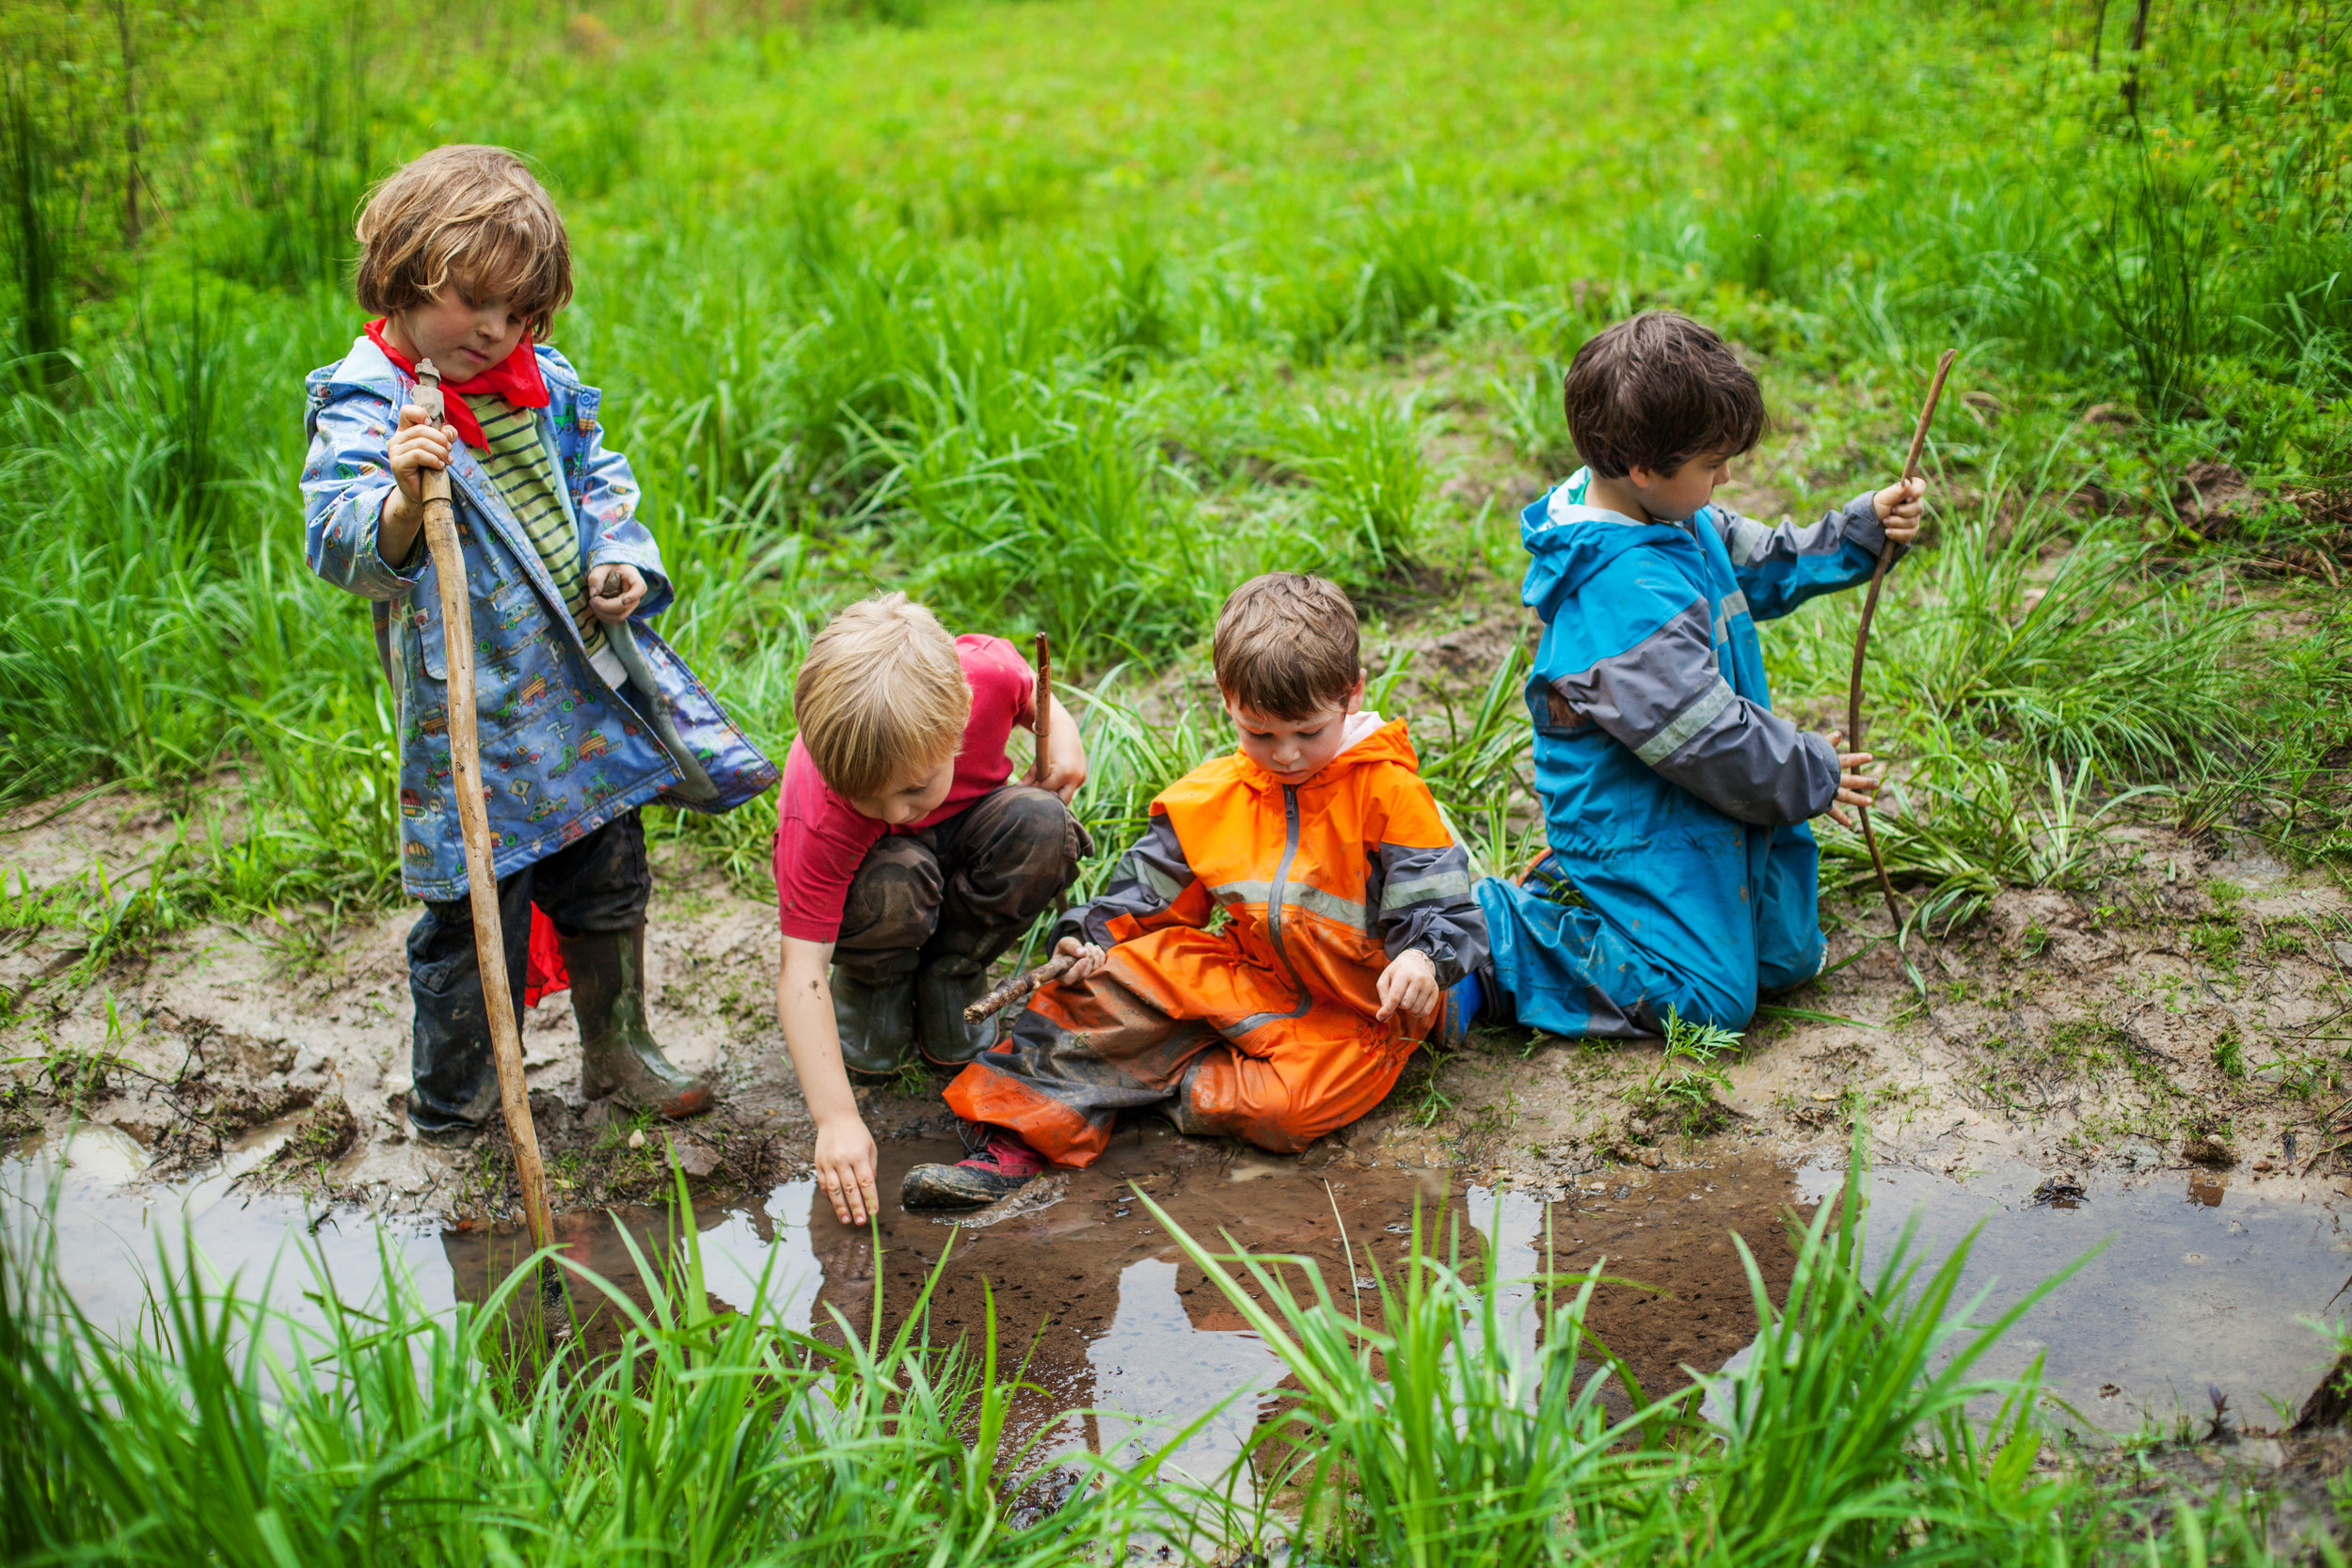 Letting kids explore their world in their own way is critical for them to take ownership of the environment in the future.